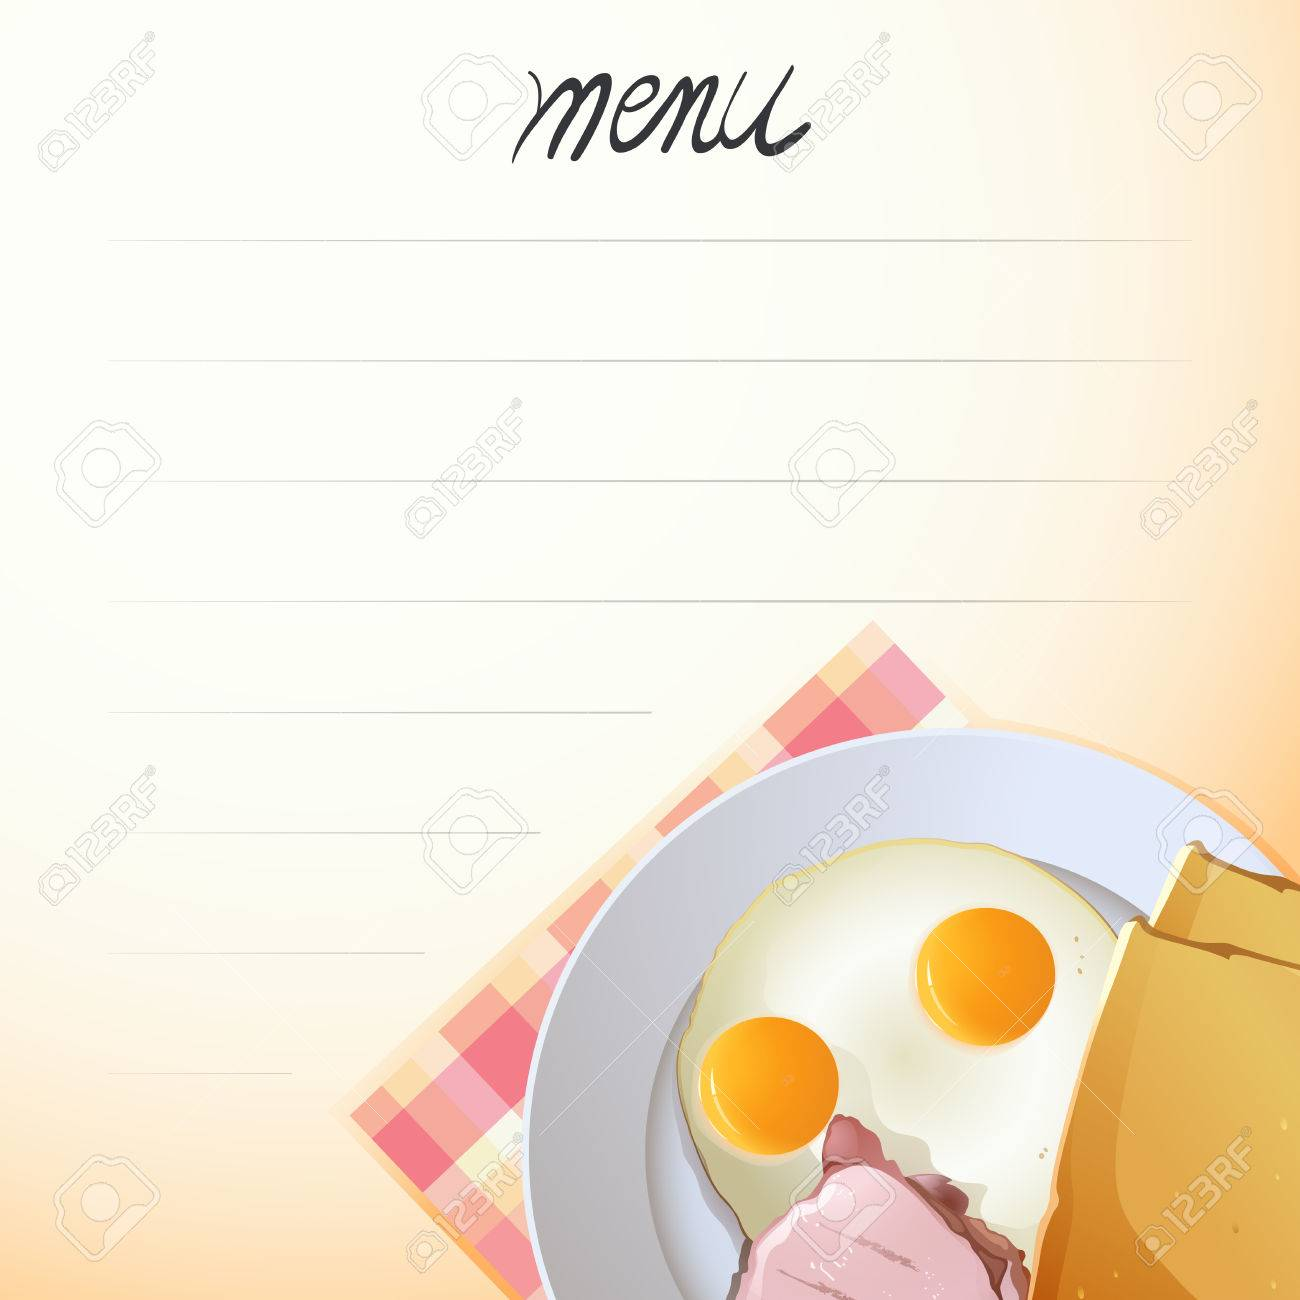 blank menu with fried egg on the plate background royalty free